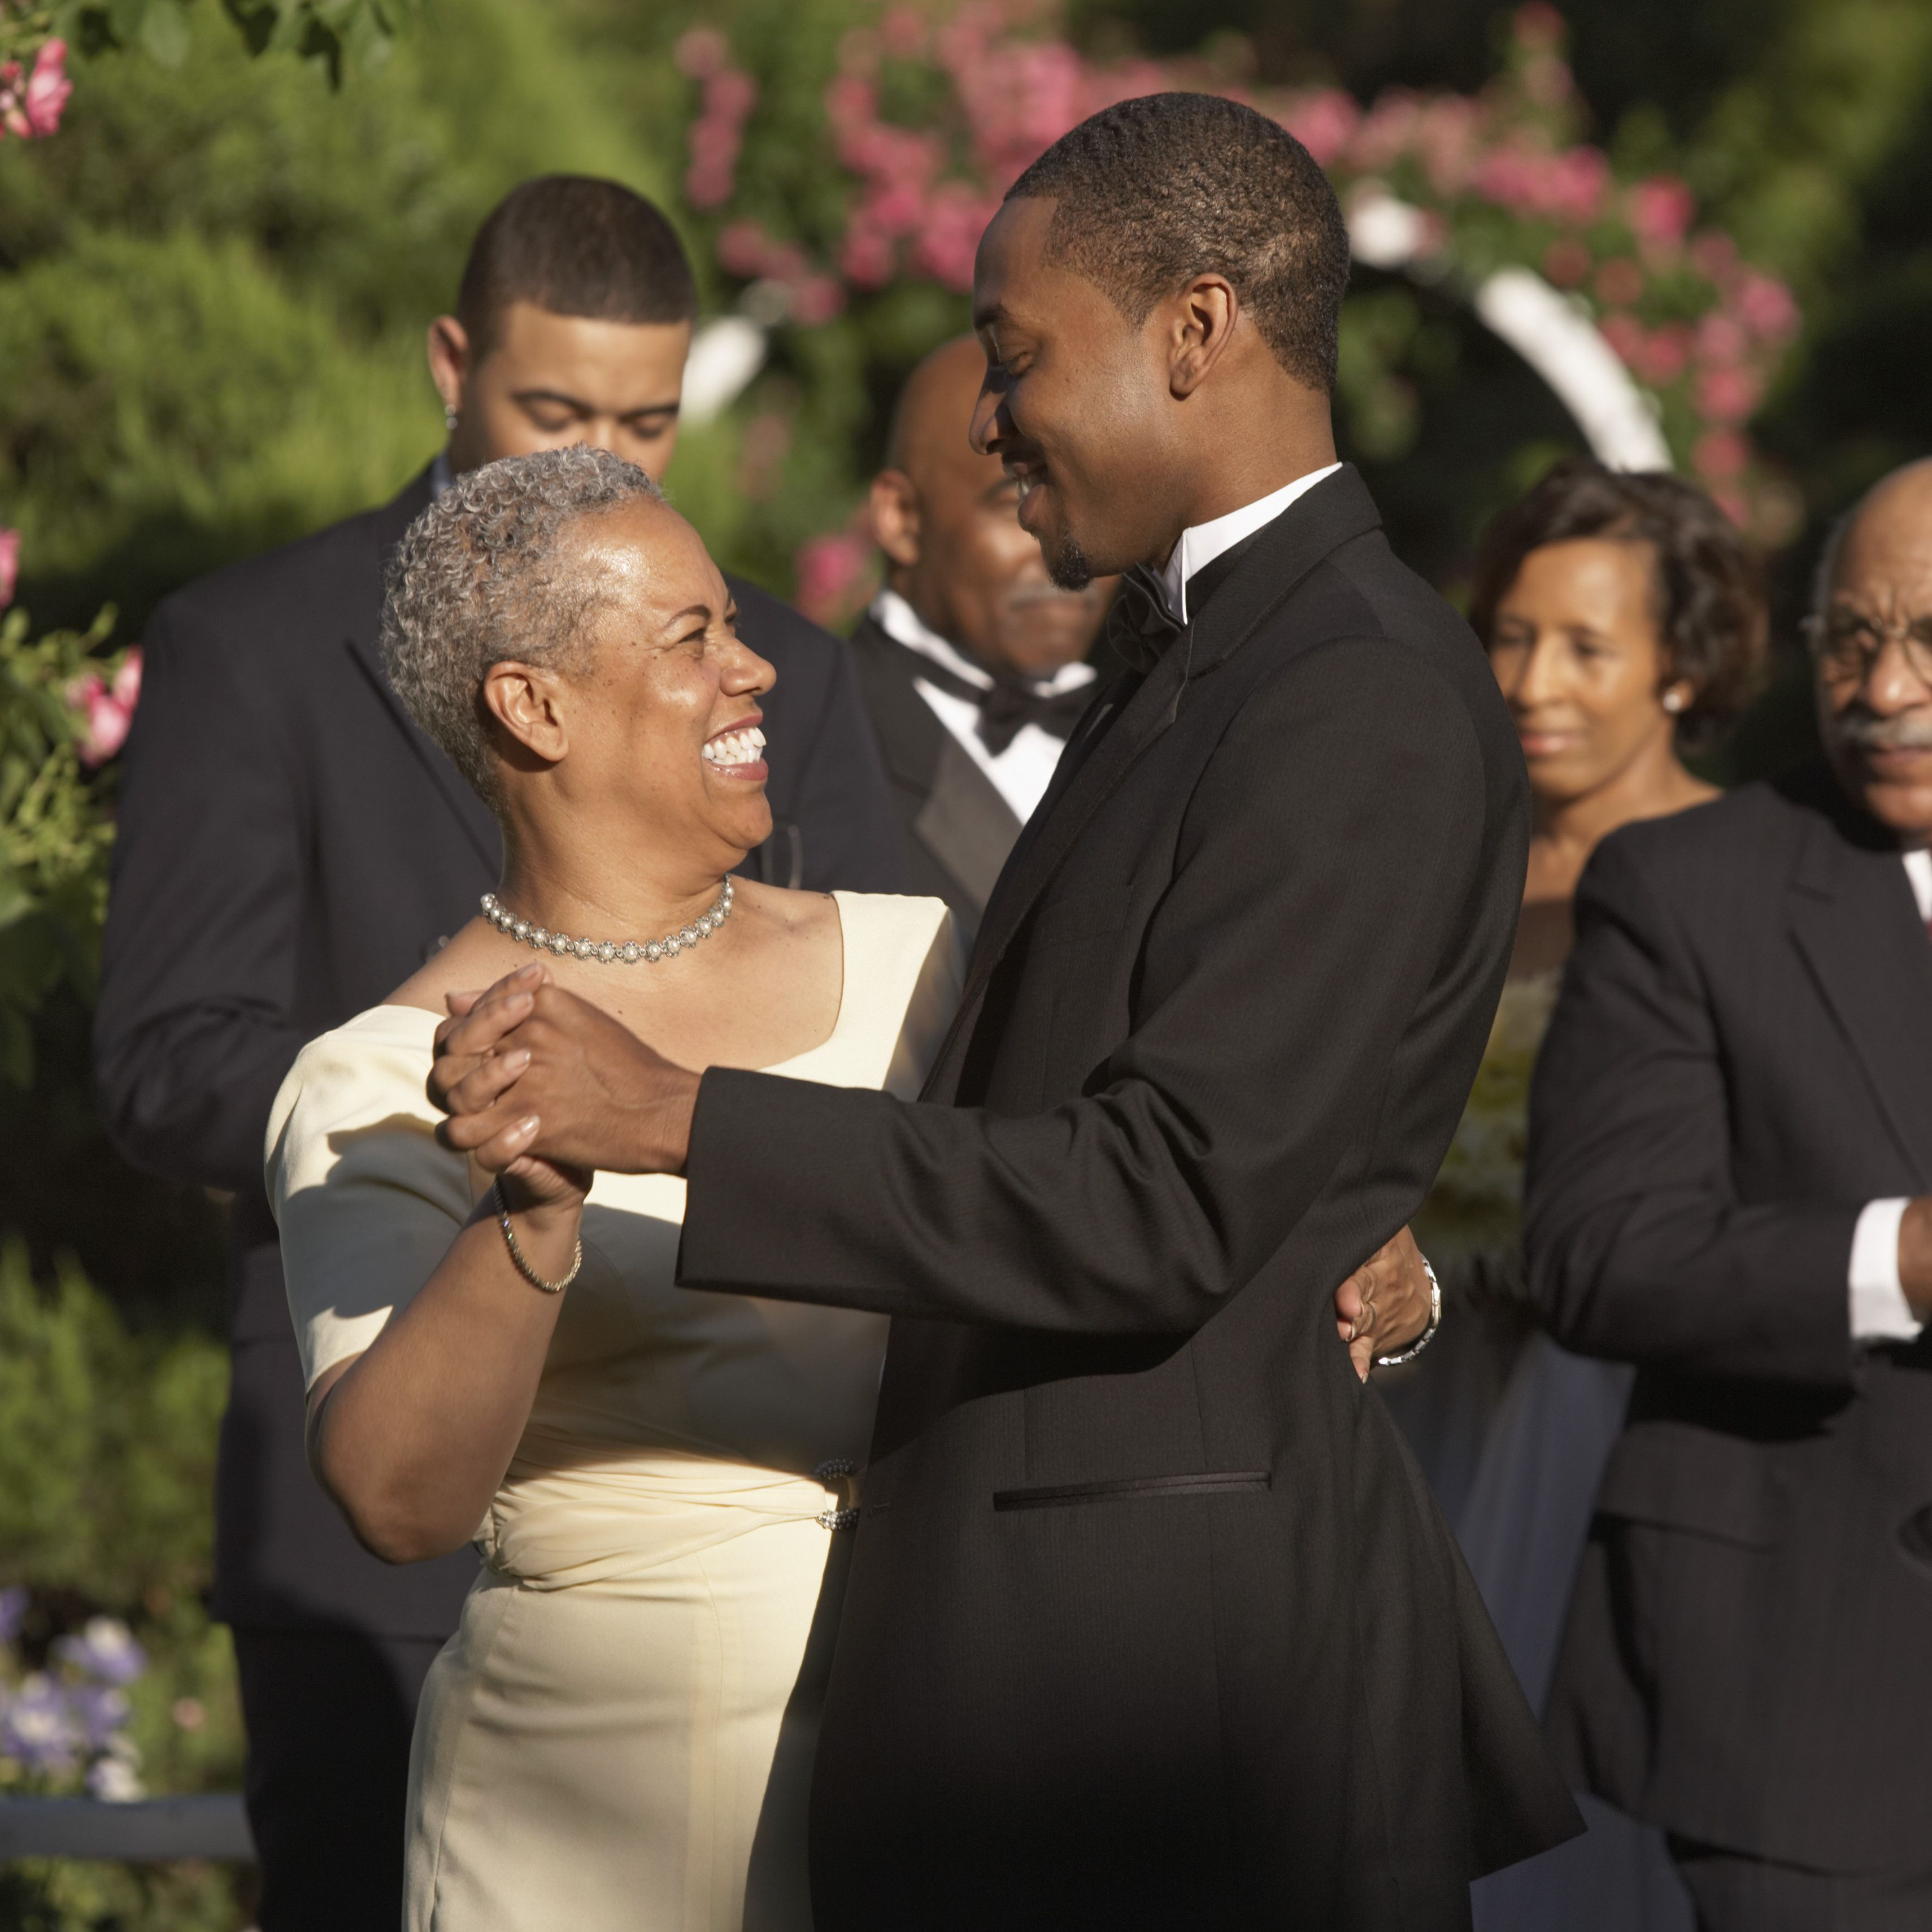 5 Great Mother-Son Wedding Reception Dance Songs